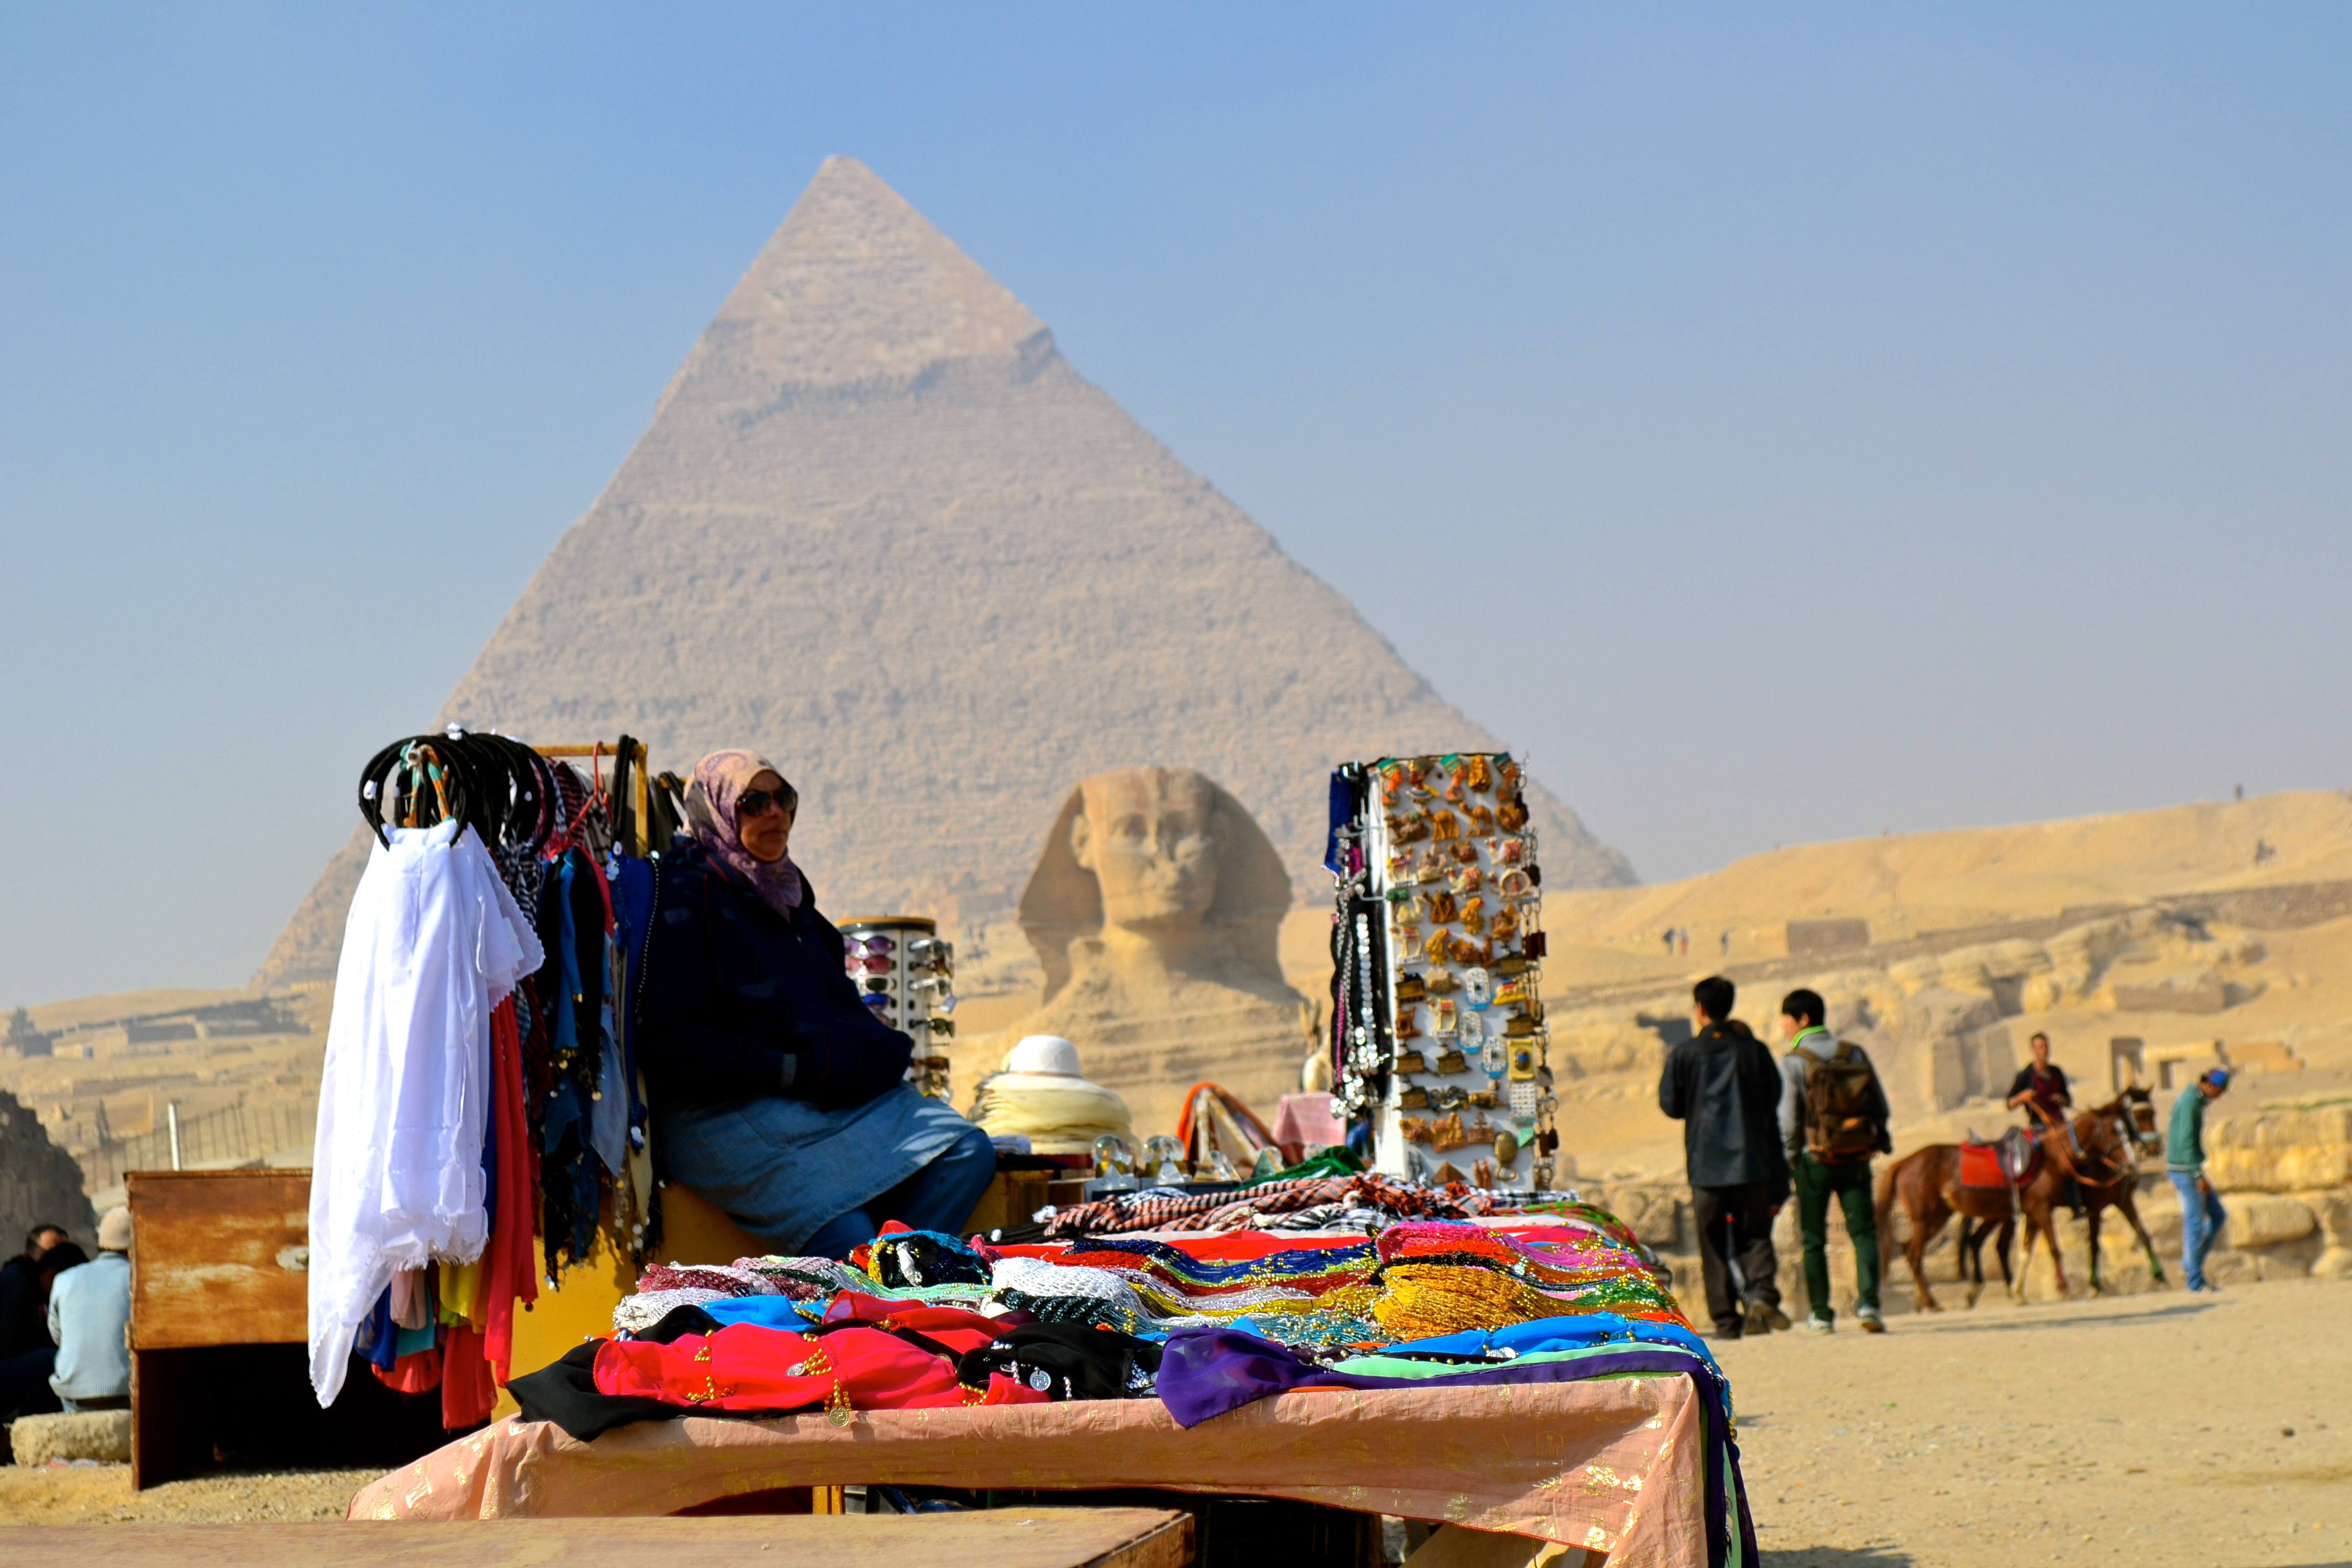 egypt tourism Tourist visa is granted for those applicants who intend to visit ukraine for tourism and sightseeing without having an invitation from a ukrainian referent.